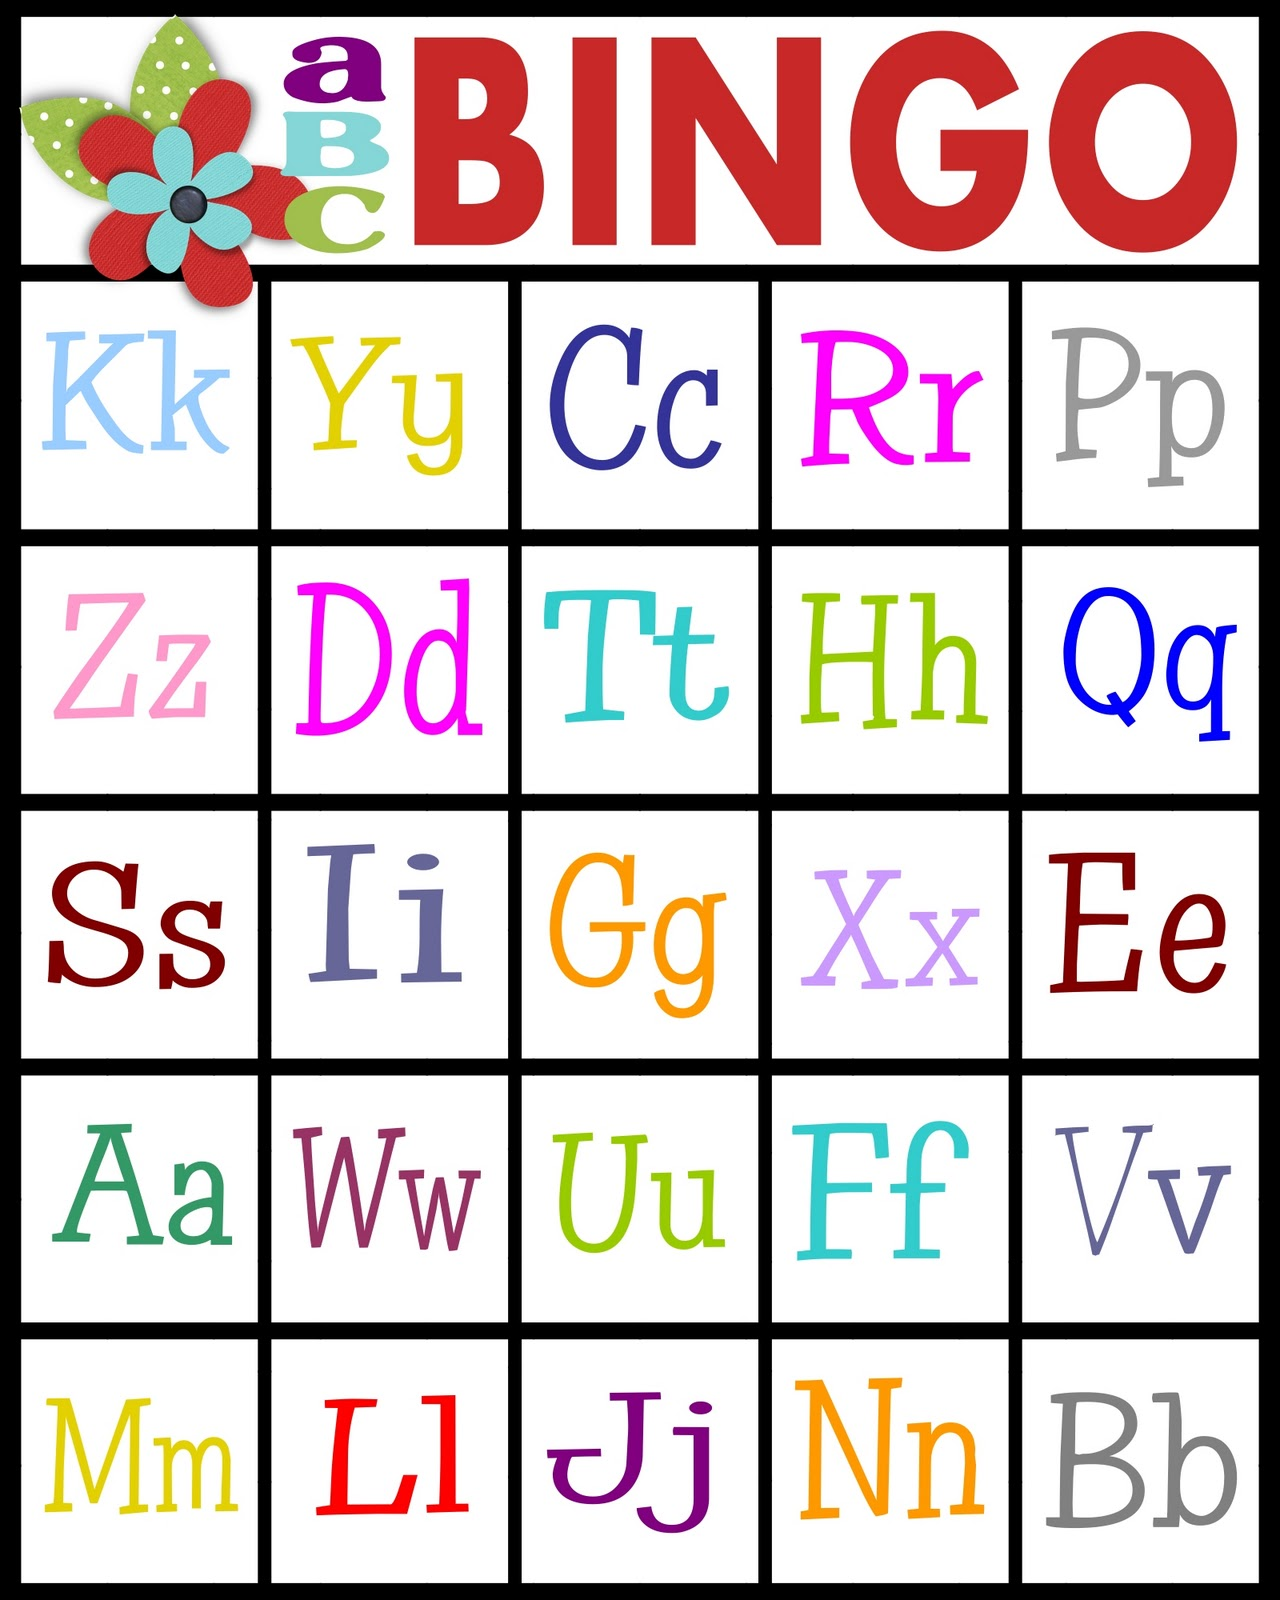 abc bingo card 4